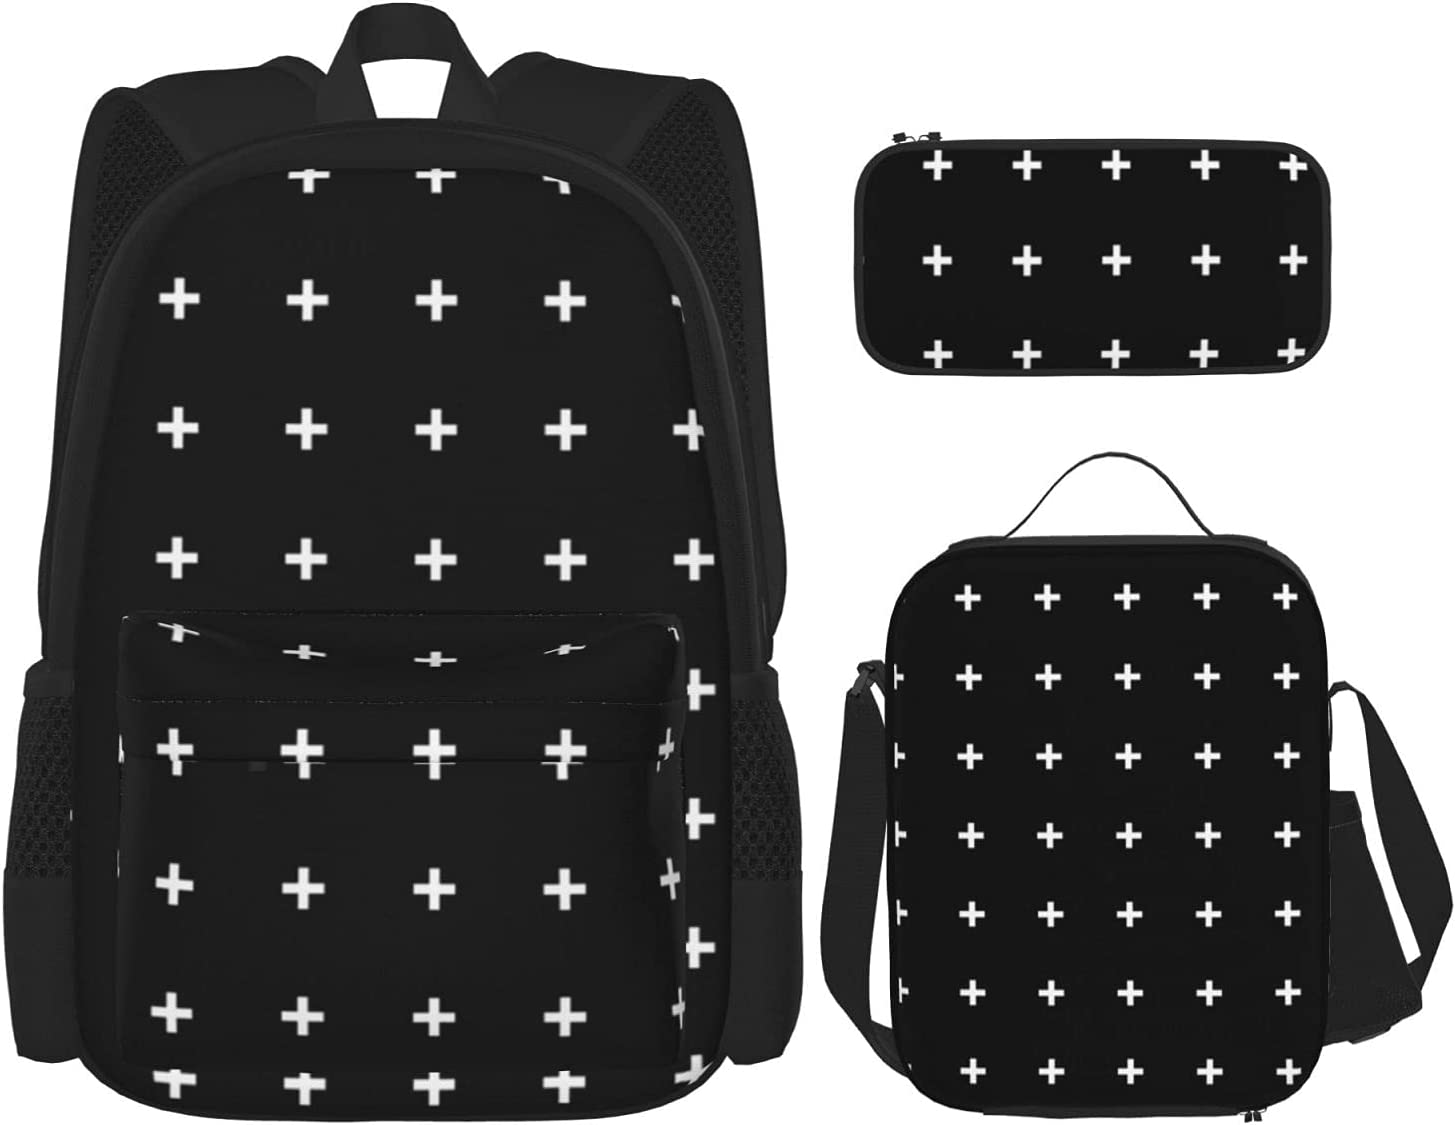 White Cross Backpack with Insulated Case Bo Box Pencil Lunch Ranking TOP17 Max 48% OFF